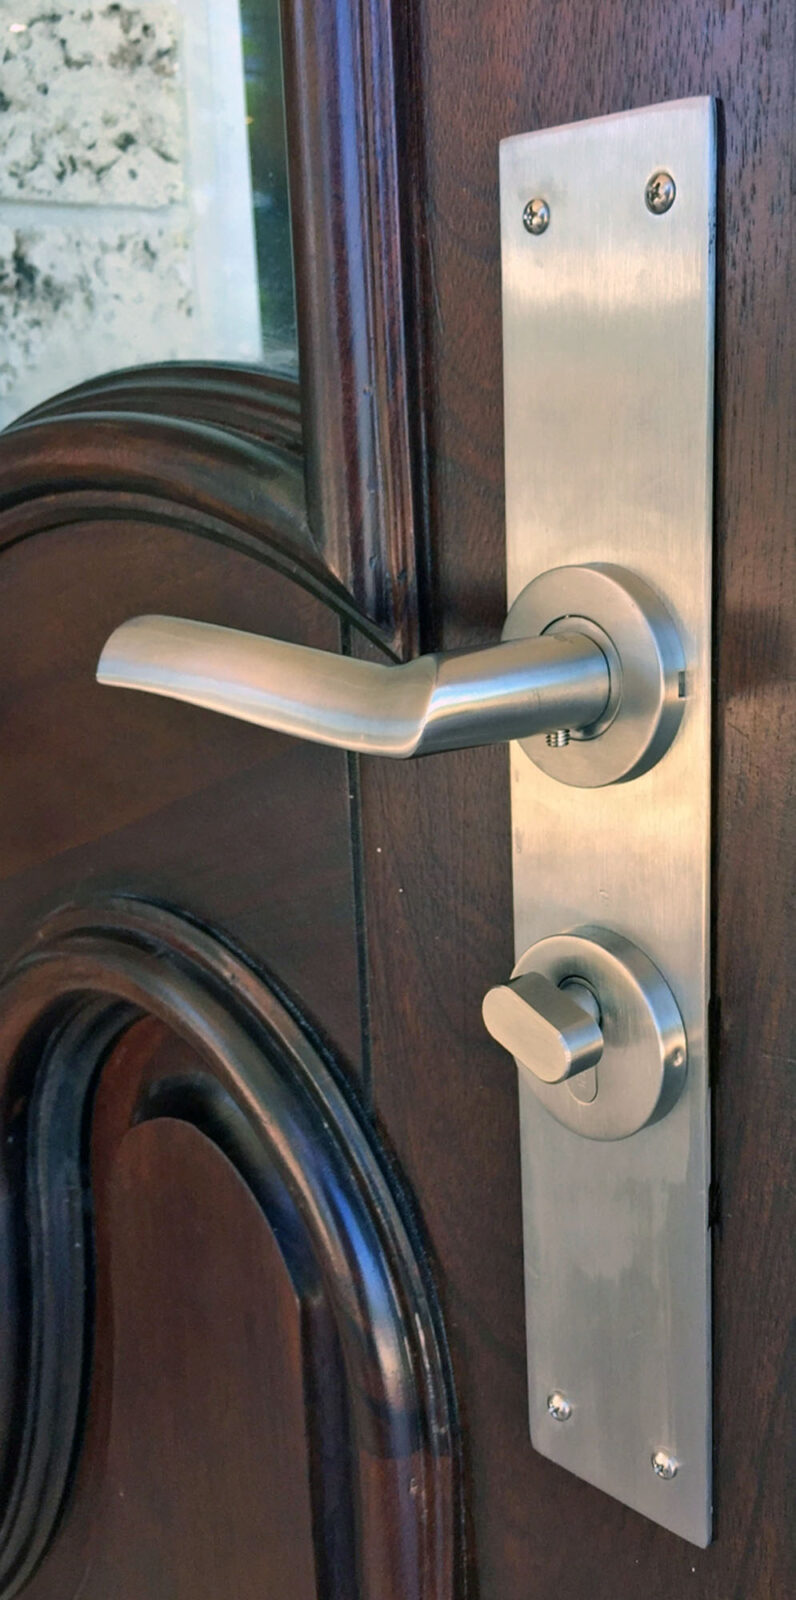 STAINLESS STEEL KEY COLONY